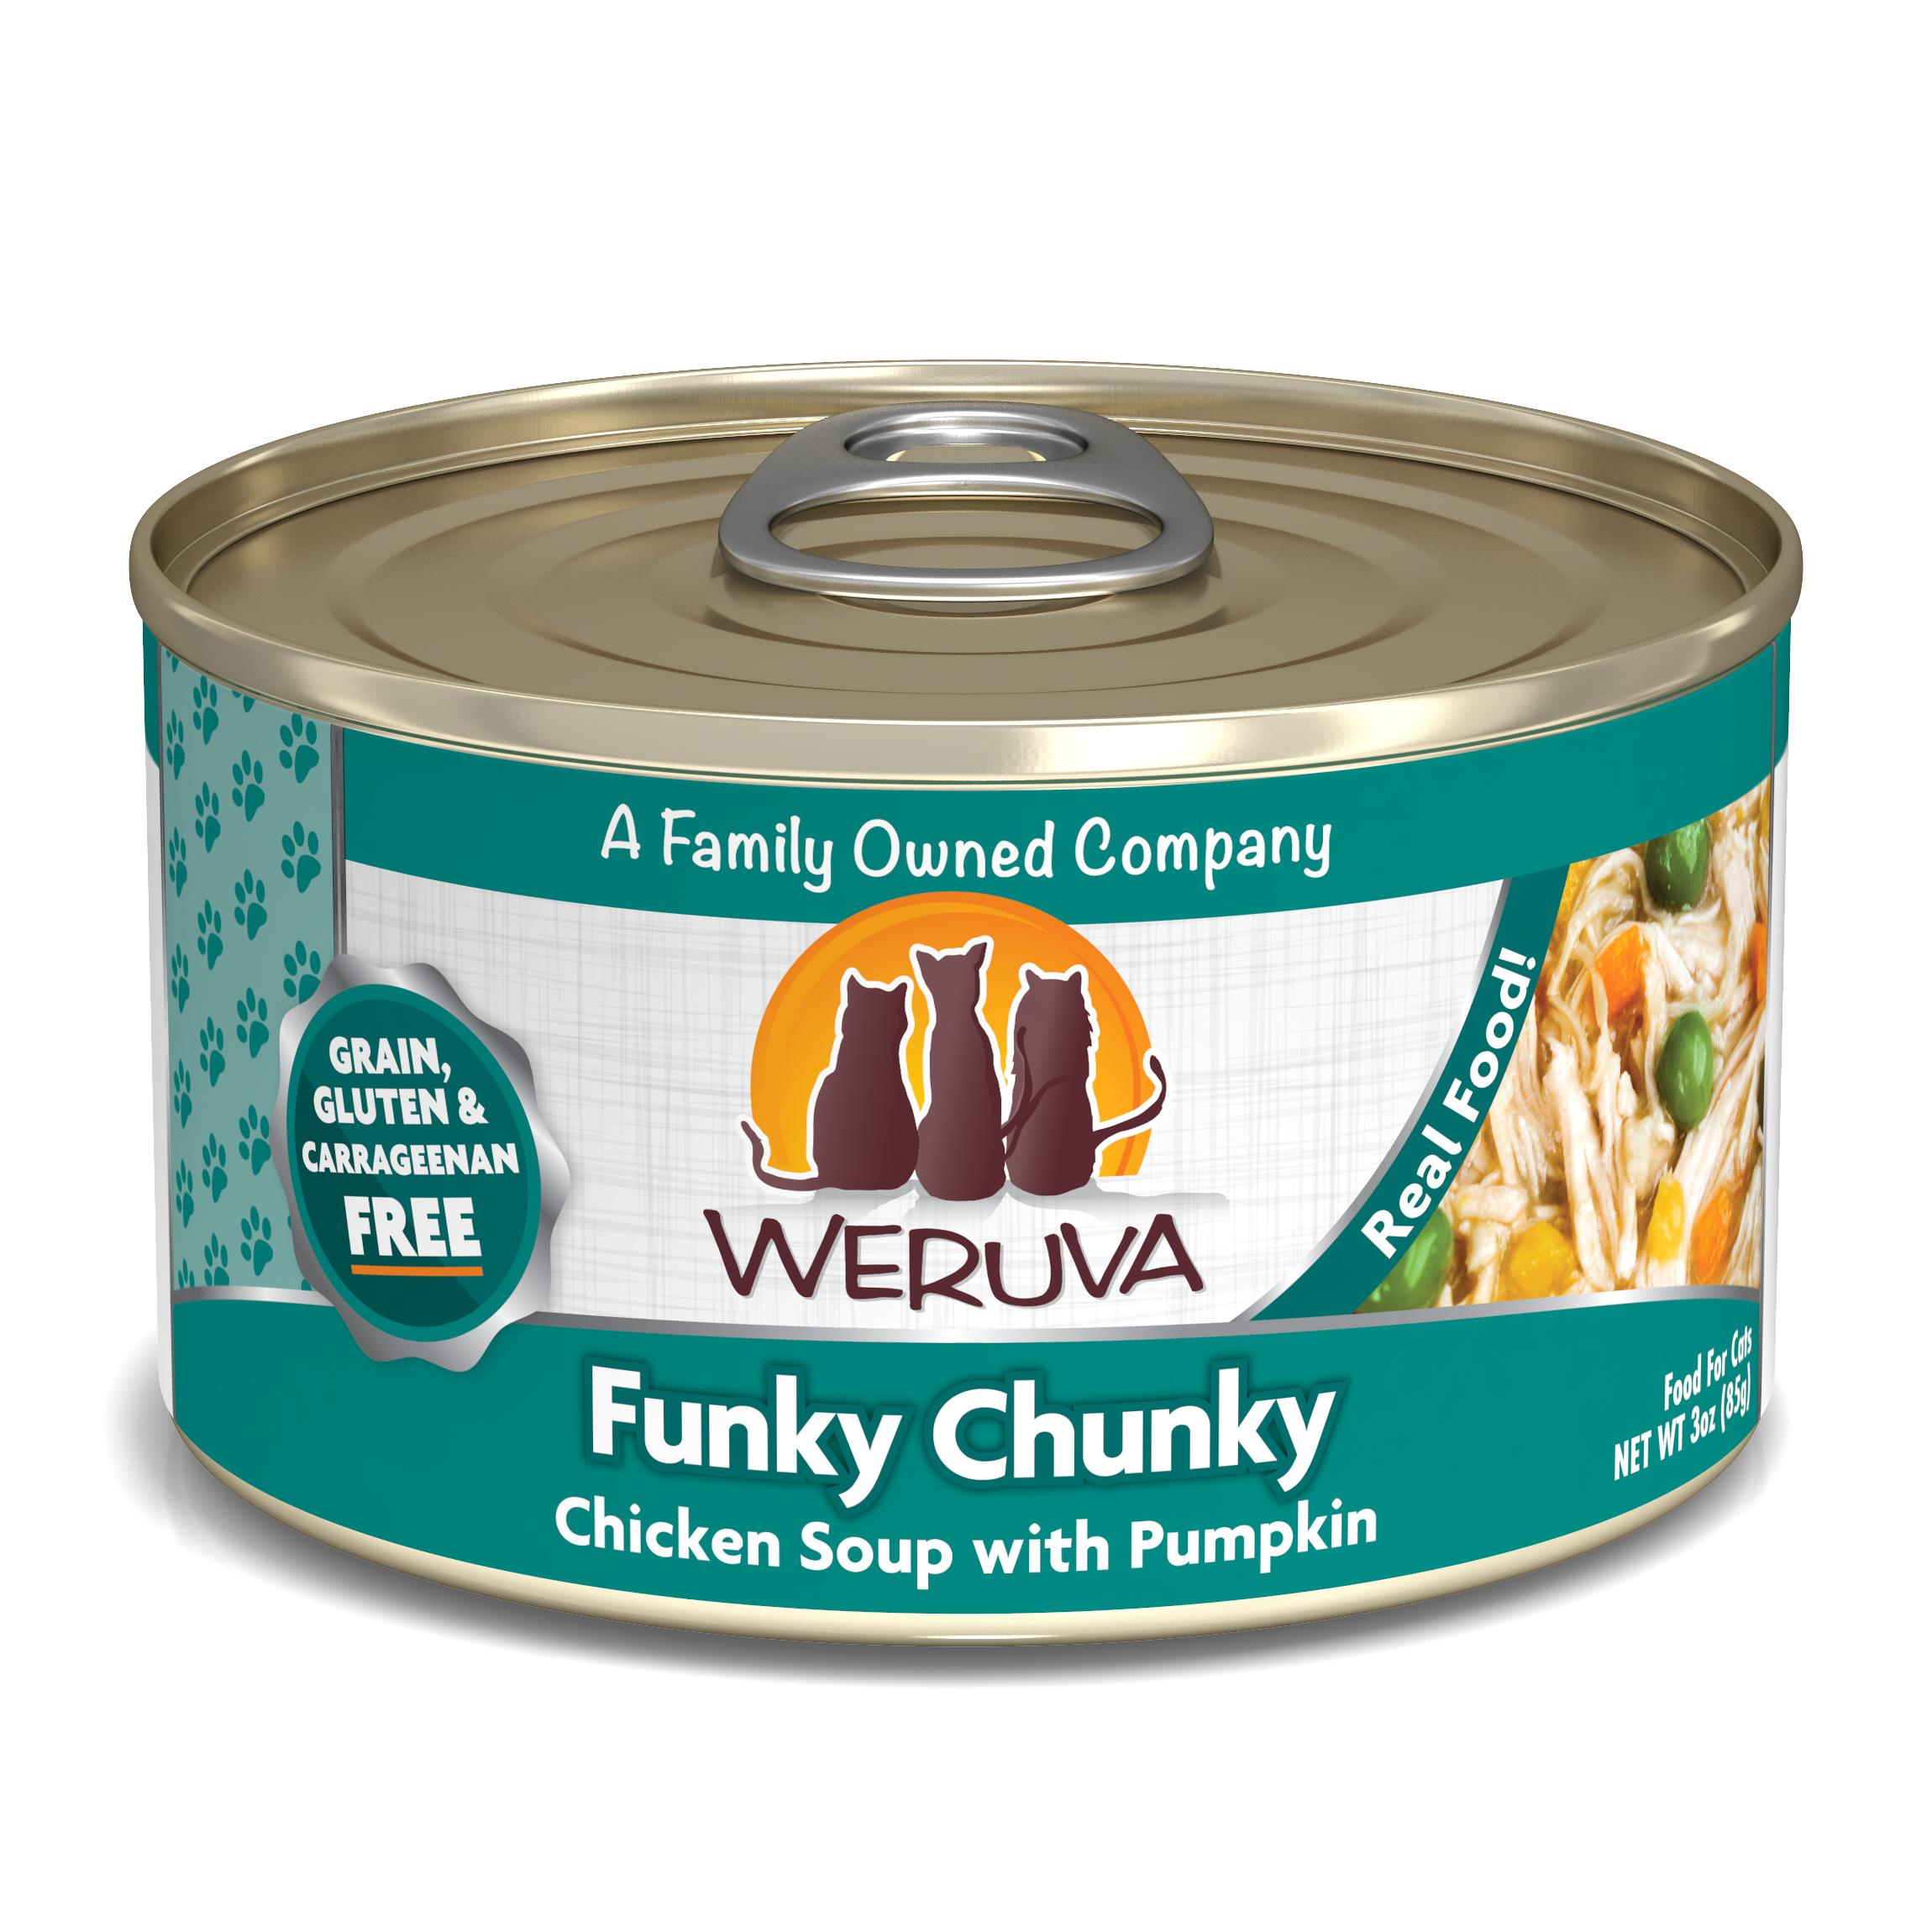 Weruva Cat Classic Funky Chunky Chicken Soup with Pumpkin Grain-Free Wet Cat Food Image